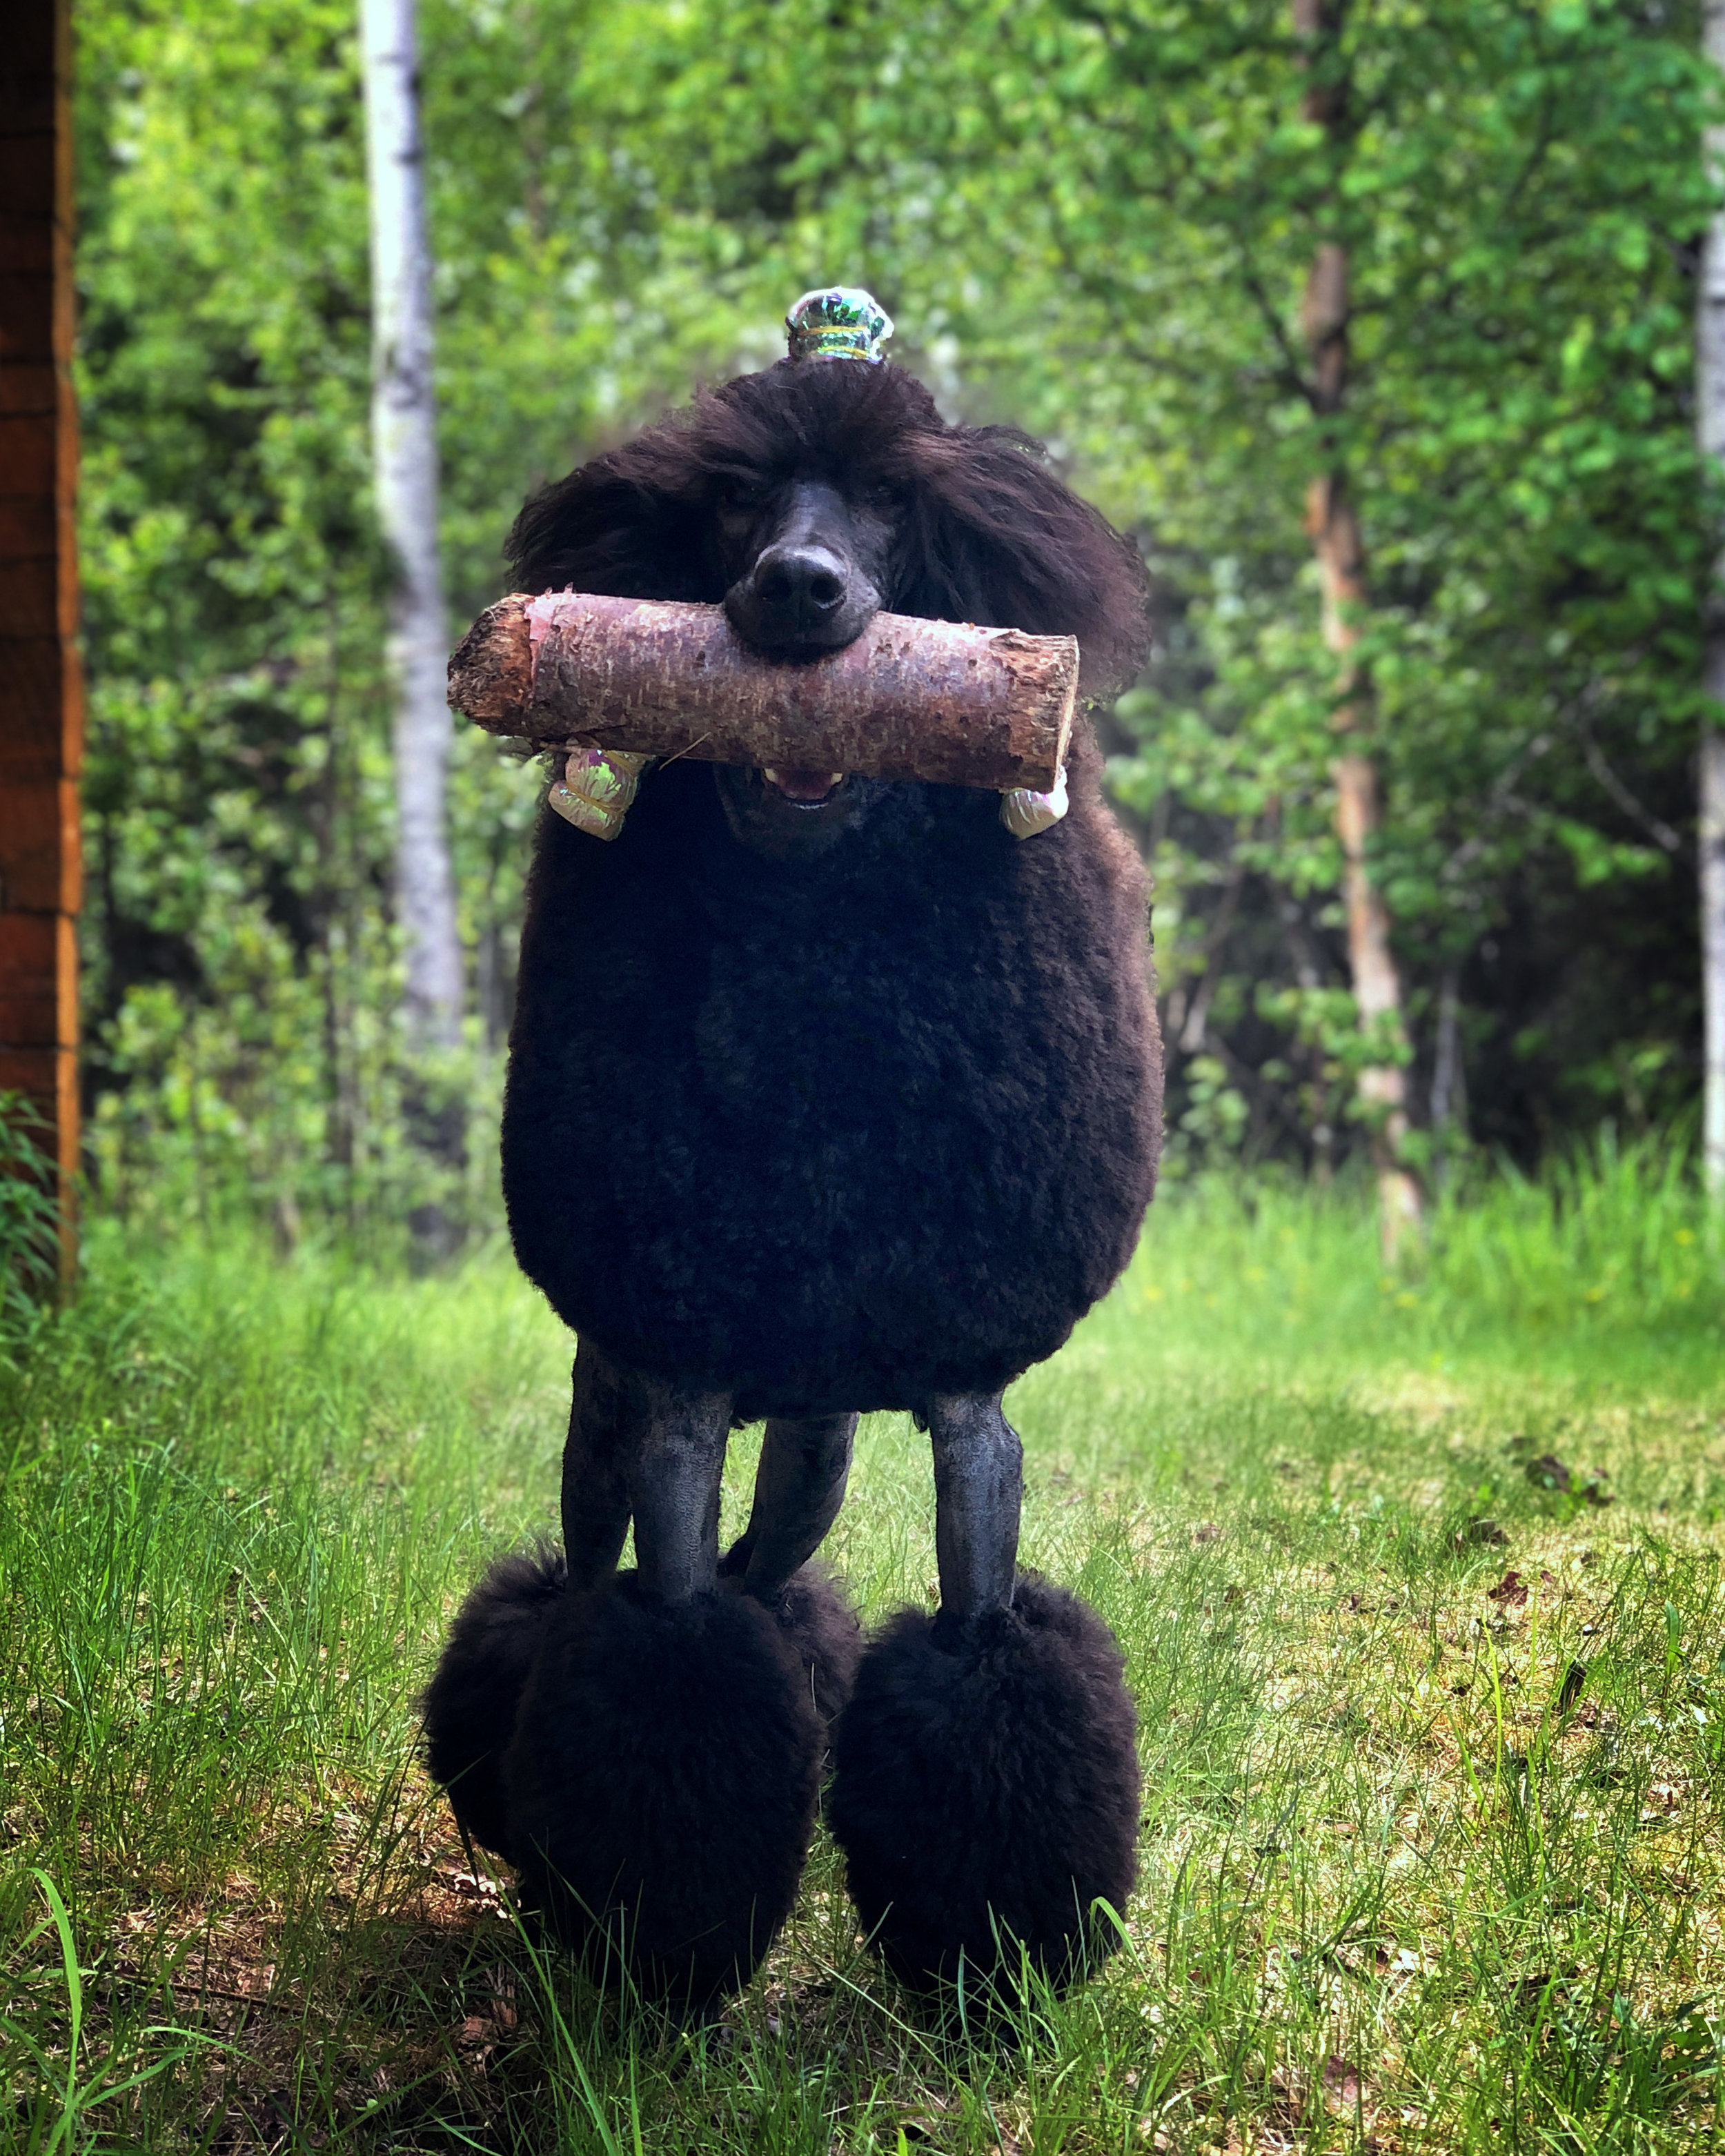 Kluane proved this summer that poodles are STRONG. Kluane carried a log around with her everywhere she went.